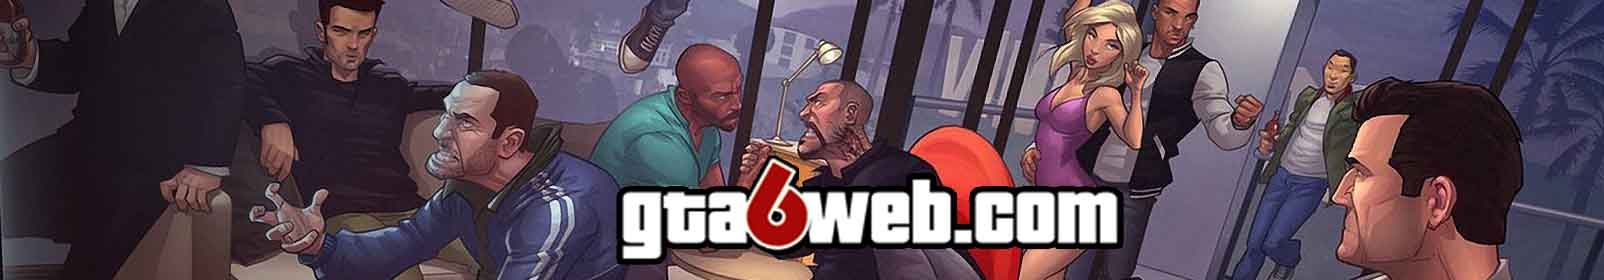 GTA 6 - Grand Theft Auto 6 mods - GTA6web.com